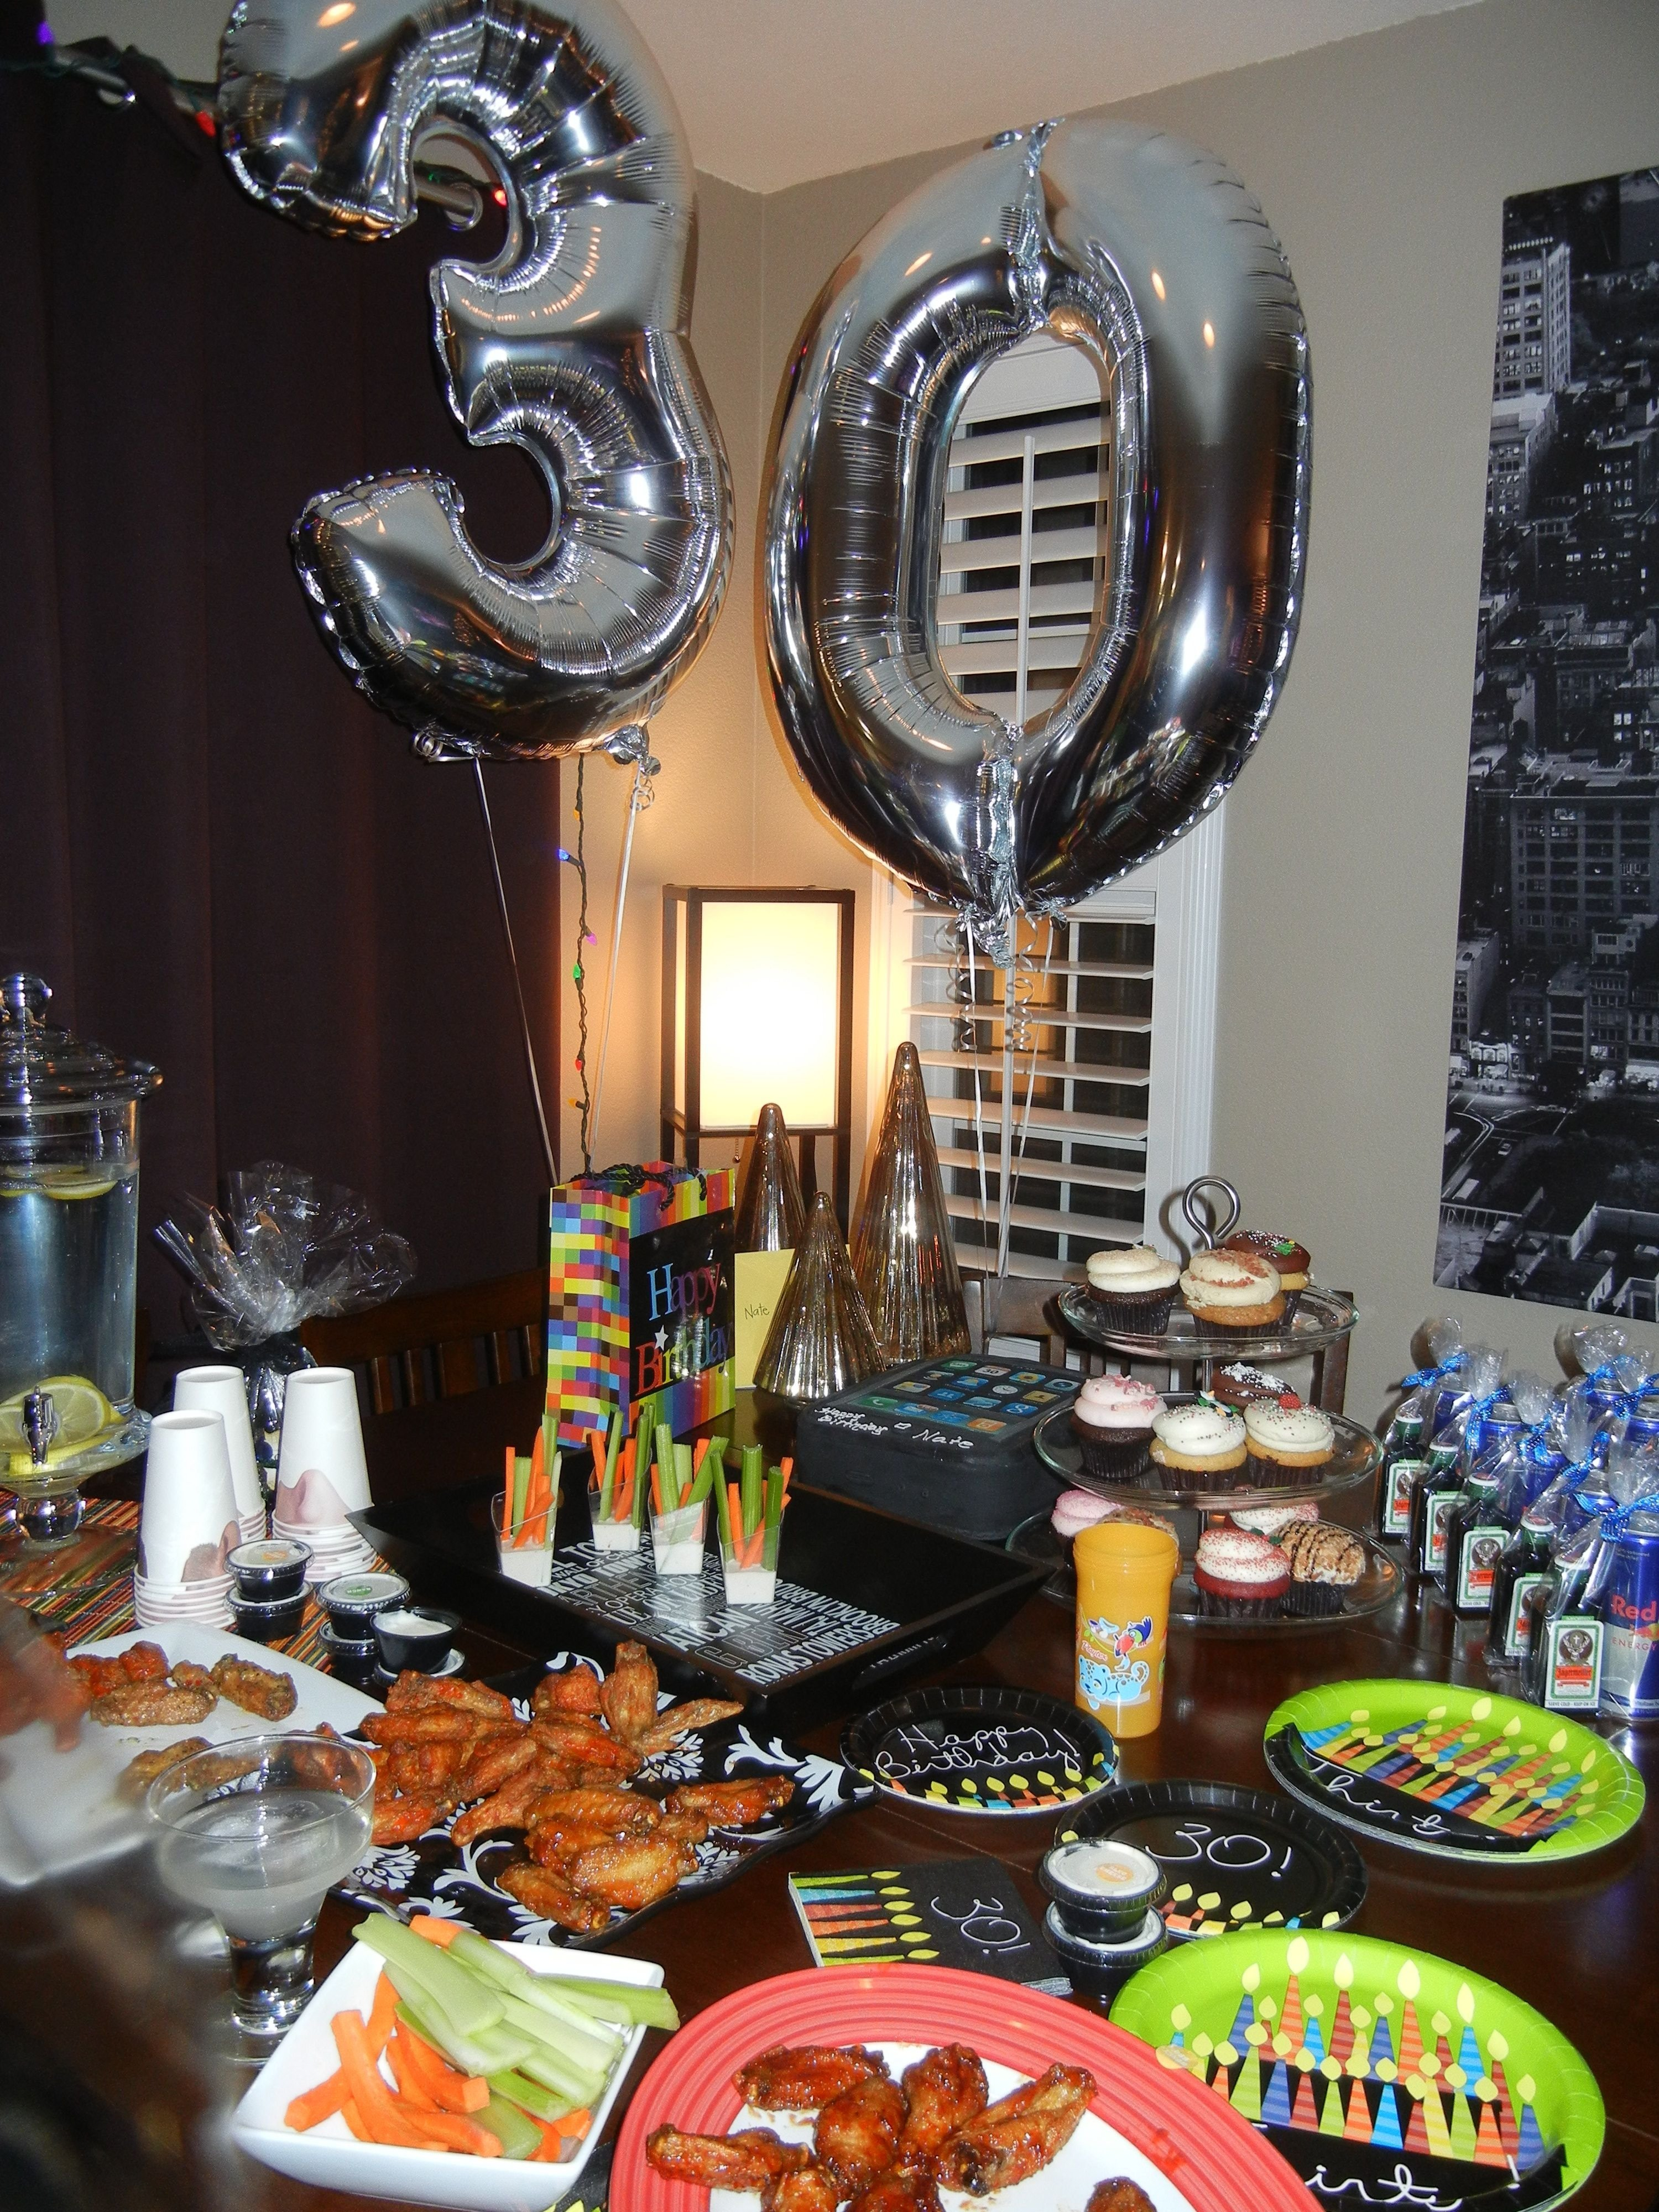 10 Lovable Ideas For 30Th Birthday Party For Him husbands 30th birthday my stuff pinterest 30 birthday 30th 13 2020